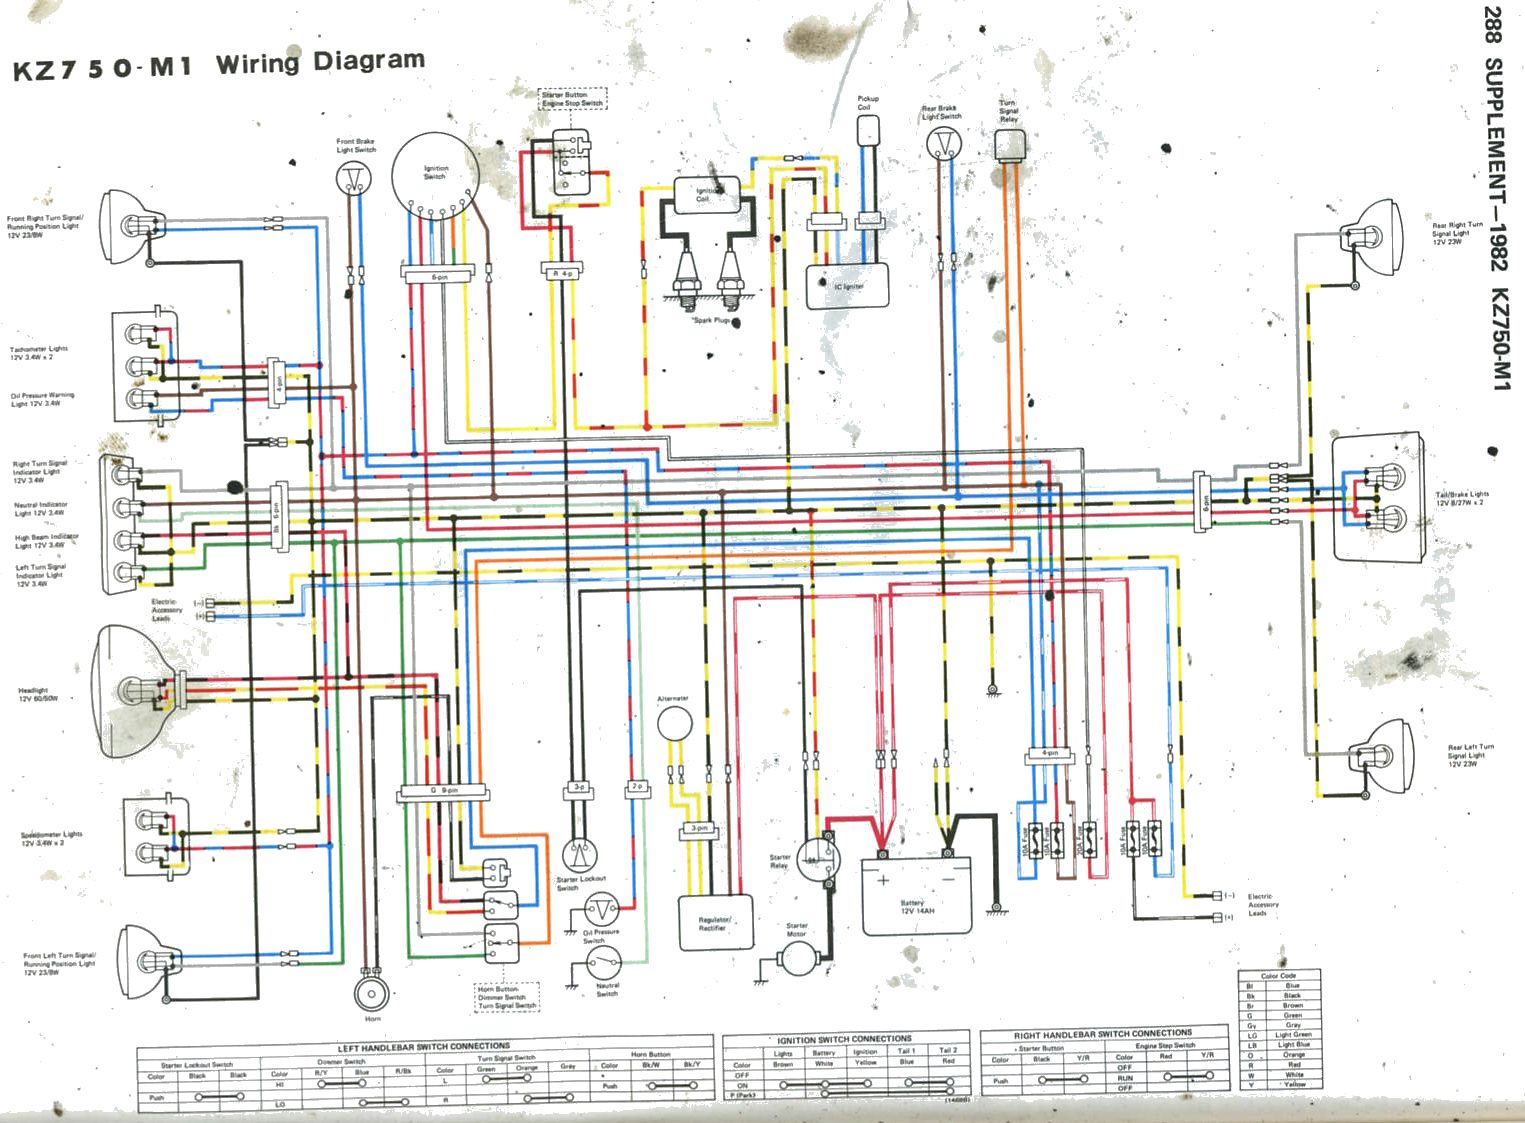 Kz750 Wiring Diagram Schemes Yamaha Xs650 Free Picture Schematic 1982 Ignition Switch Kzrider Forum Kz Z1 Z Rh Com 1981